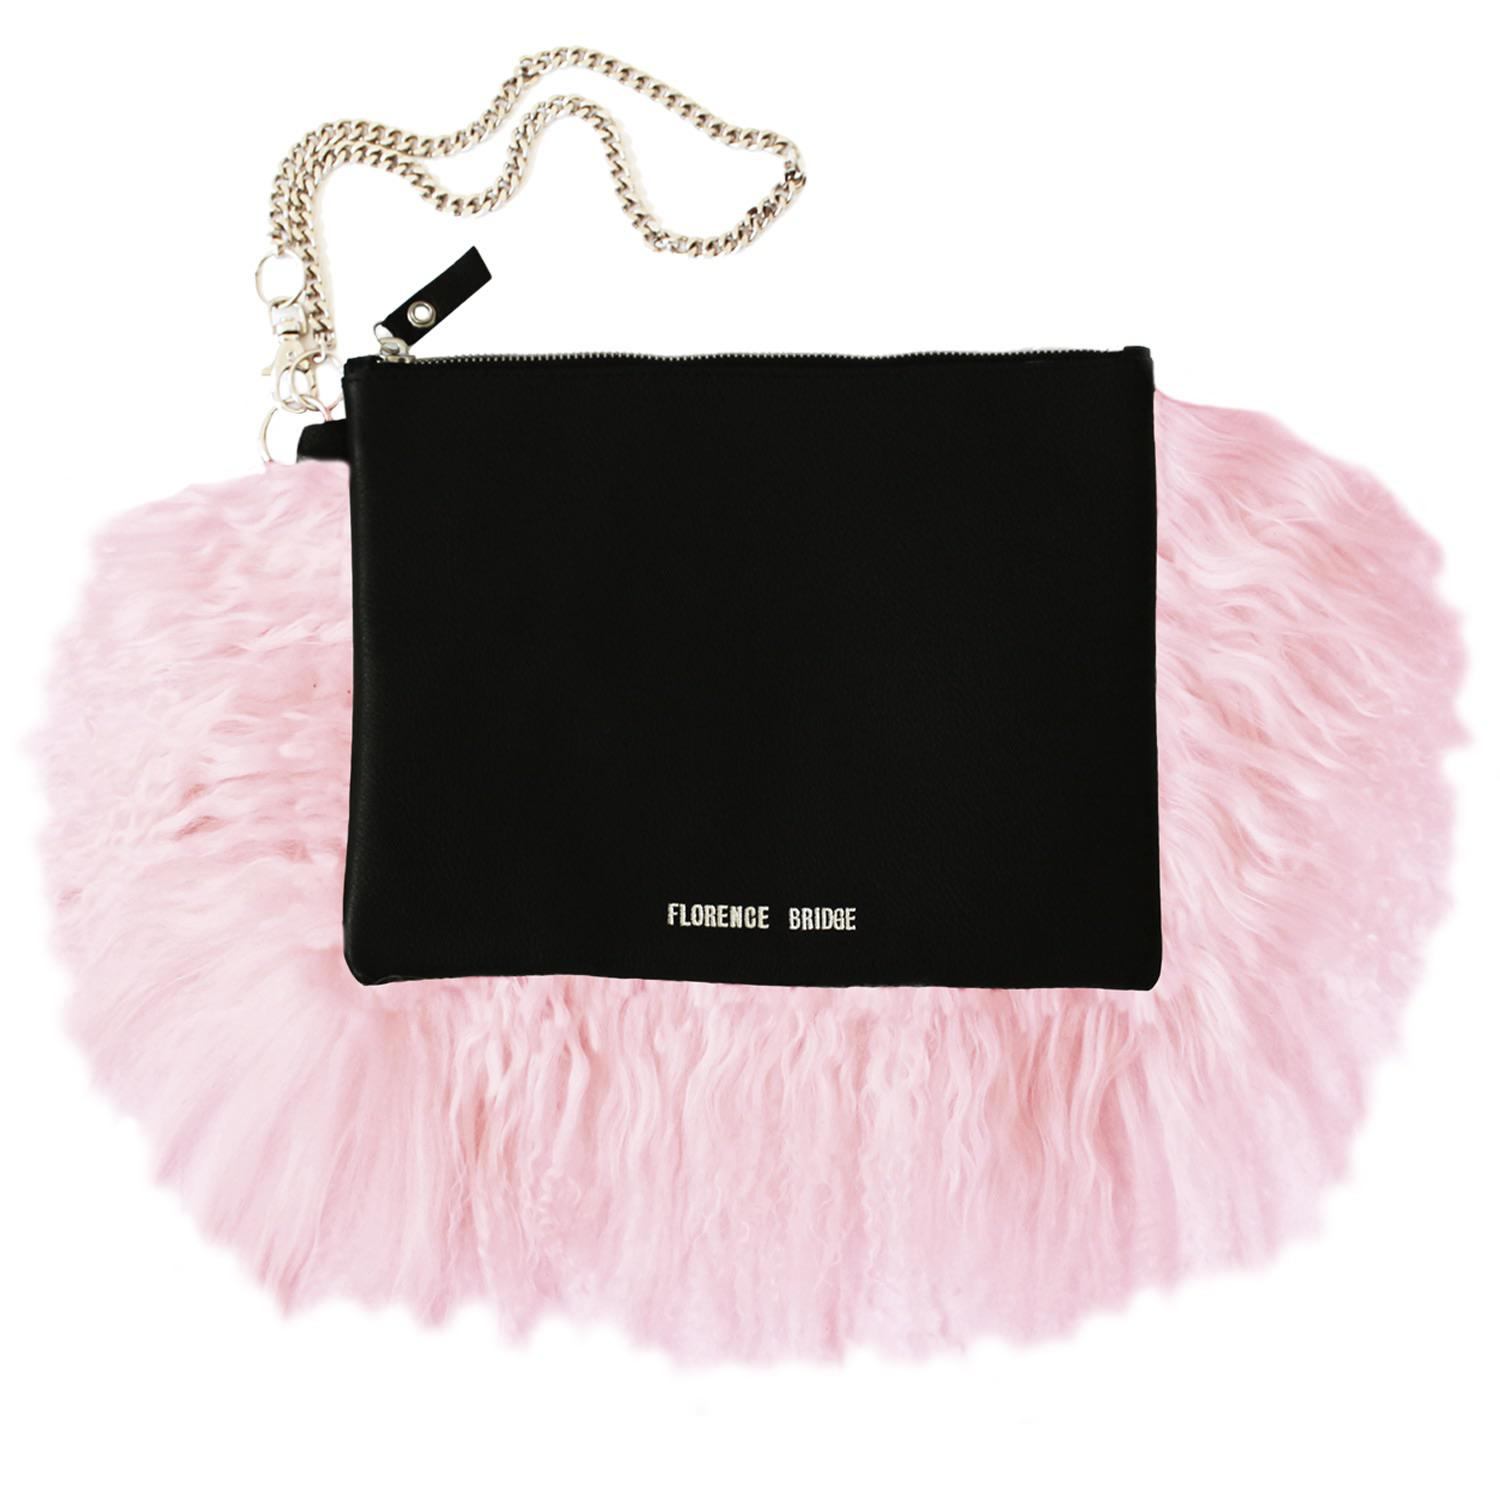 Florence Bridge Fluffy Bianca Clutch Bag Pink in Pink - Lyst 10d73125fcac7